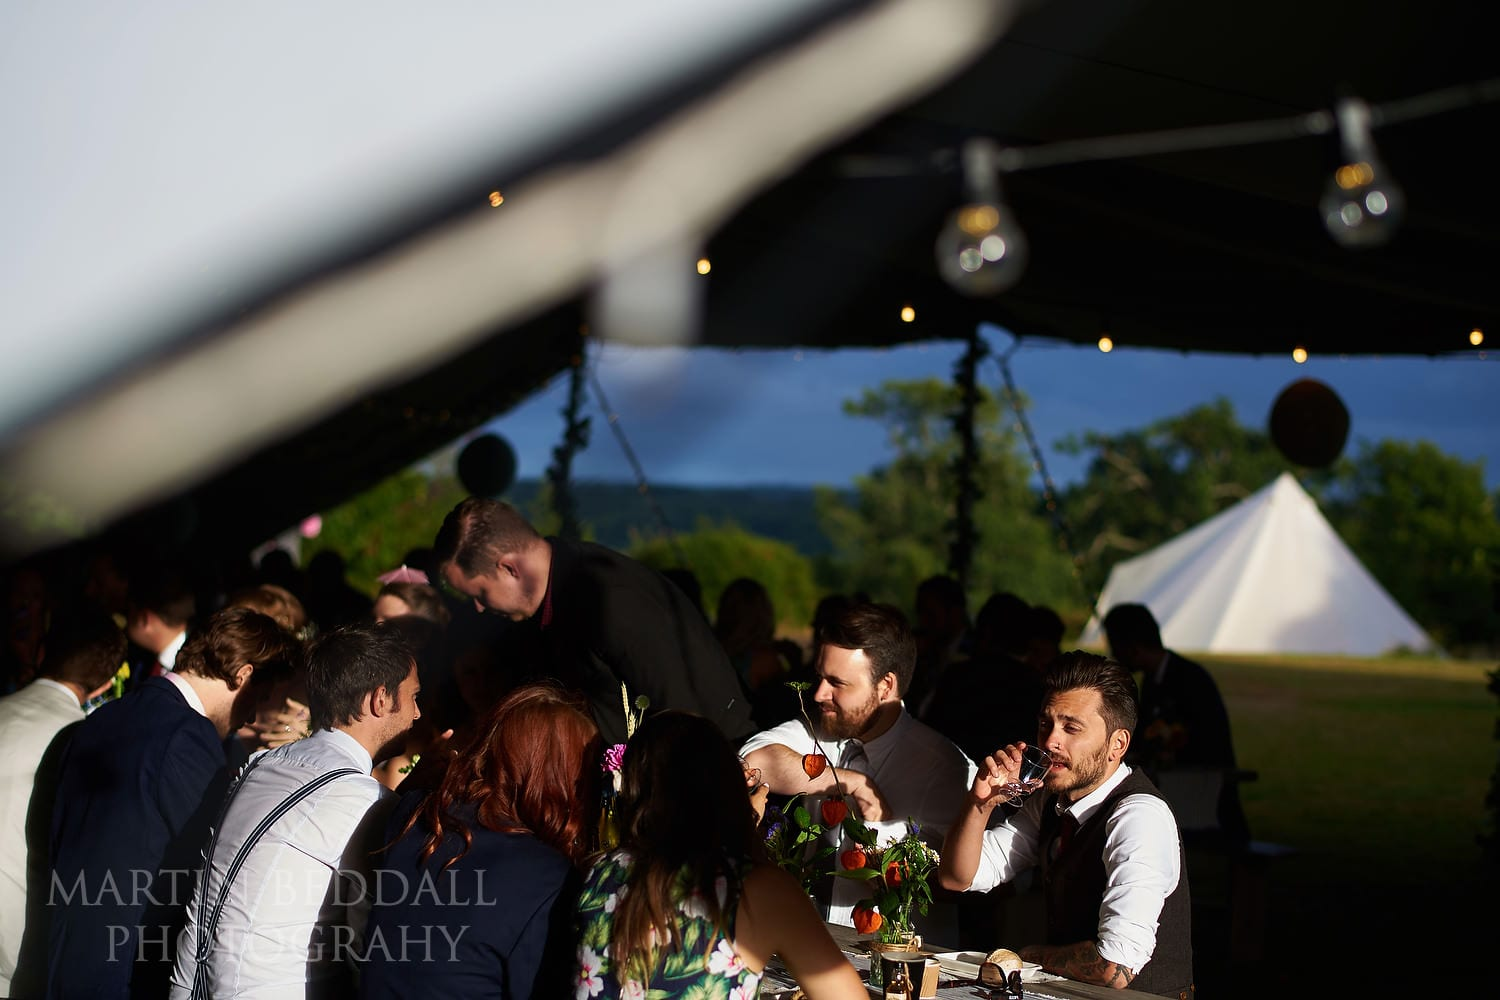 East Sussex wedding festival style in a tipi